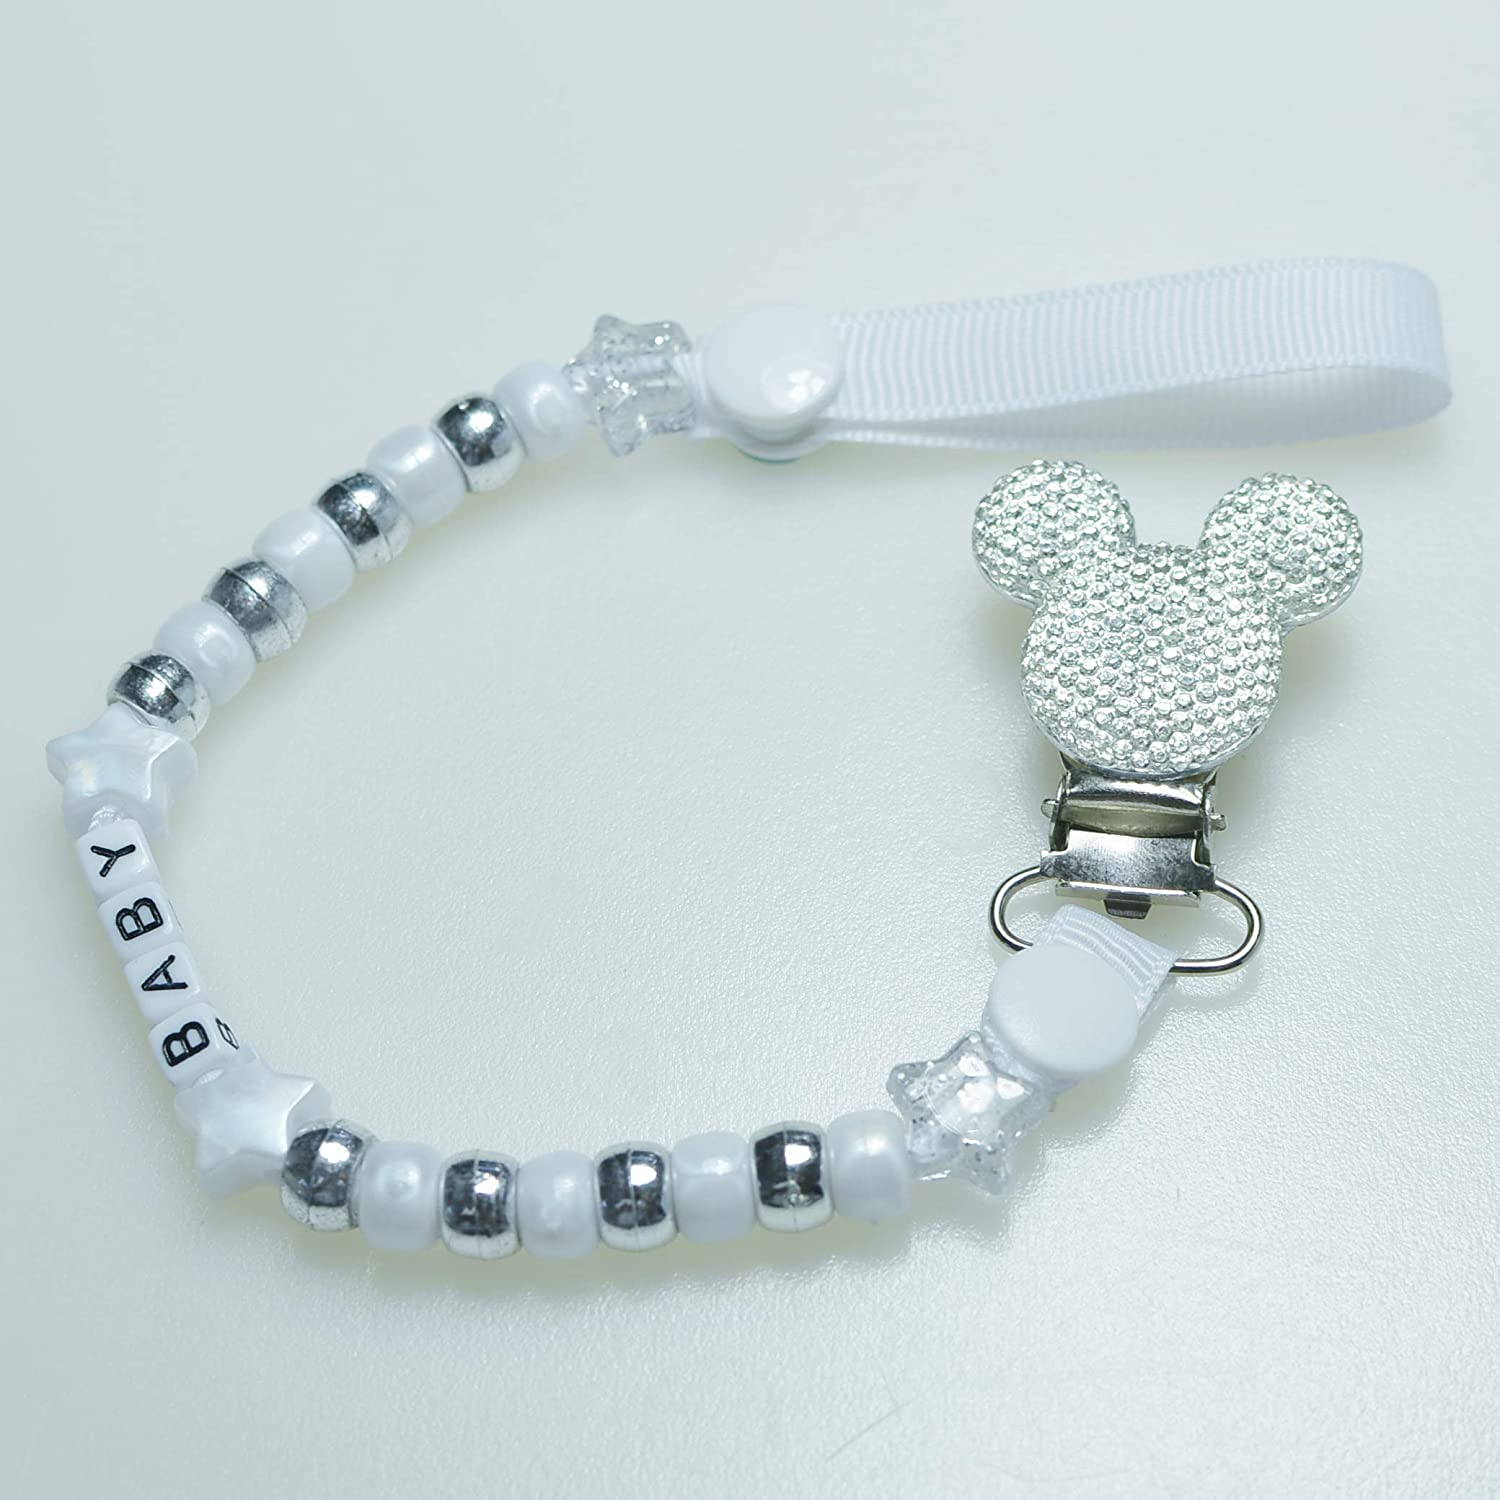 Personalised Dummy Chain by Bling Mickey Resin Metal Pacifier Chain for Baby Lavender